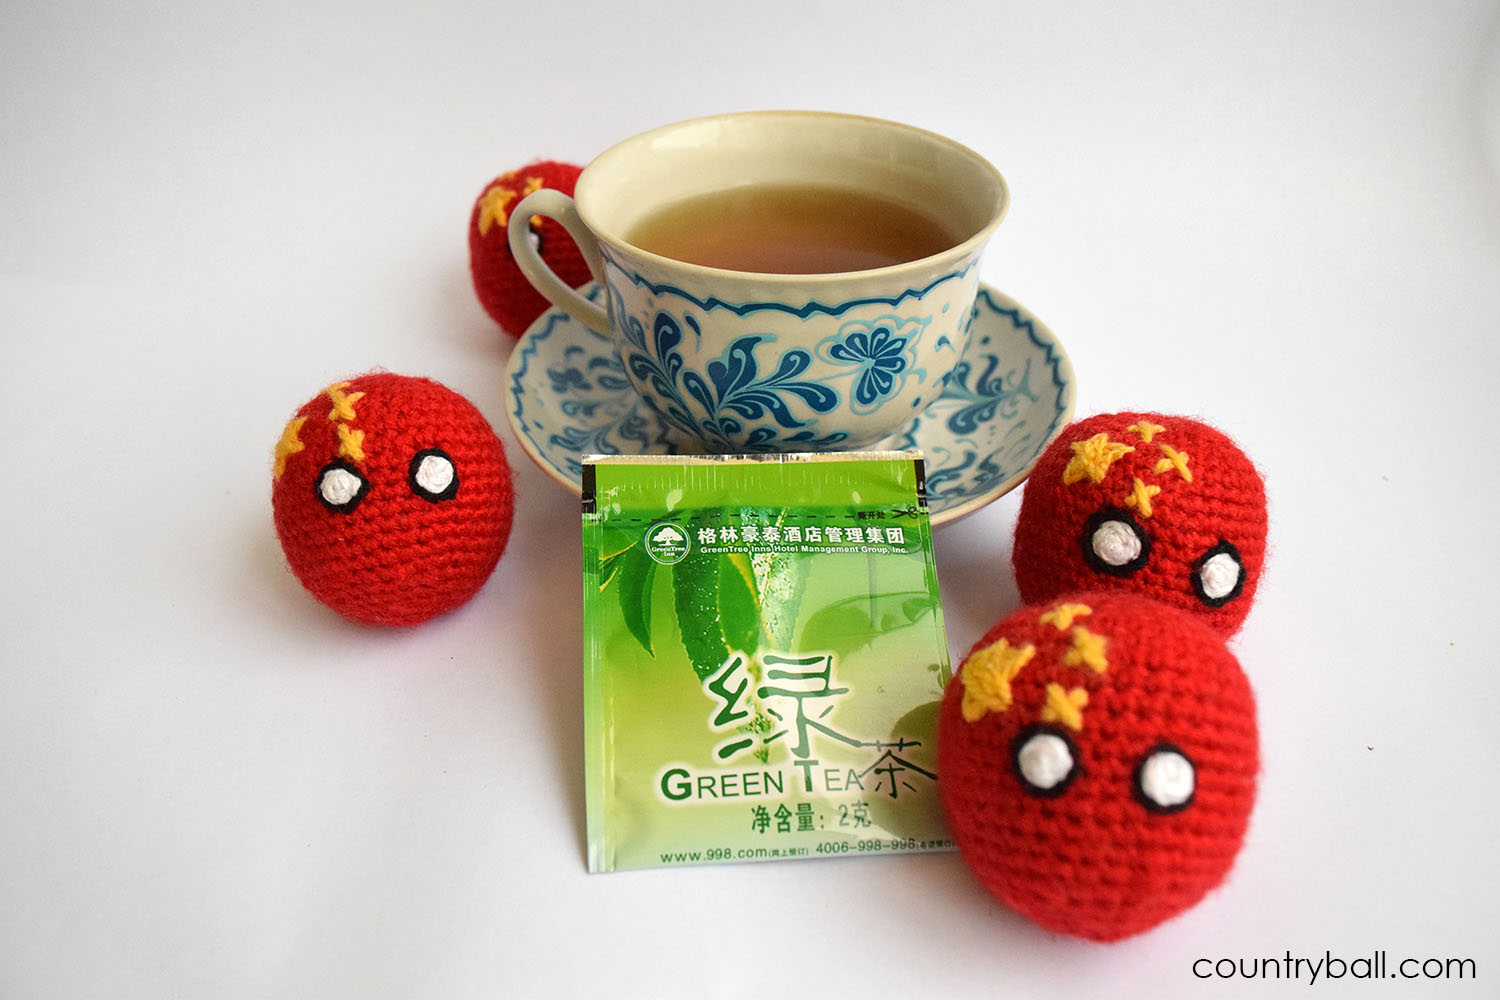 Chinaball drinking Green Tea